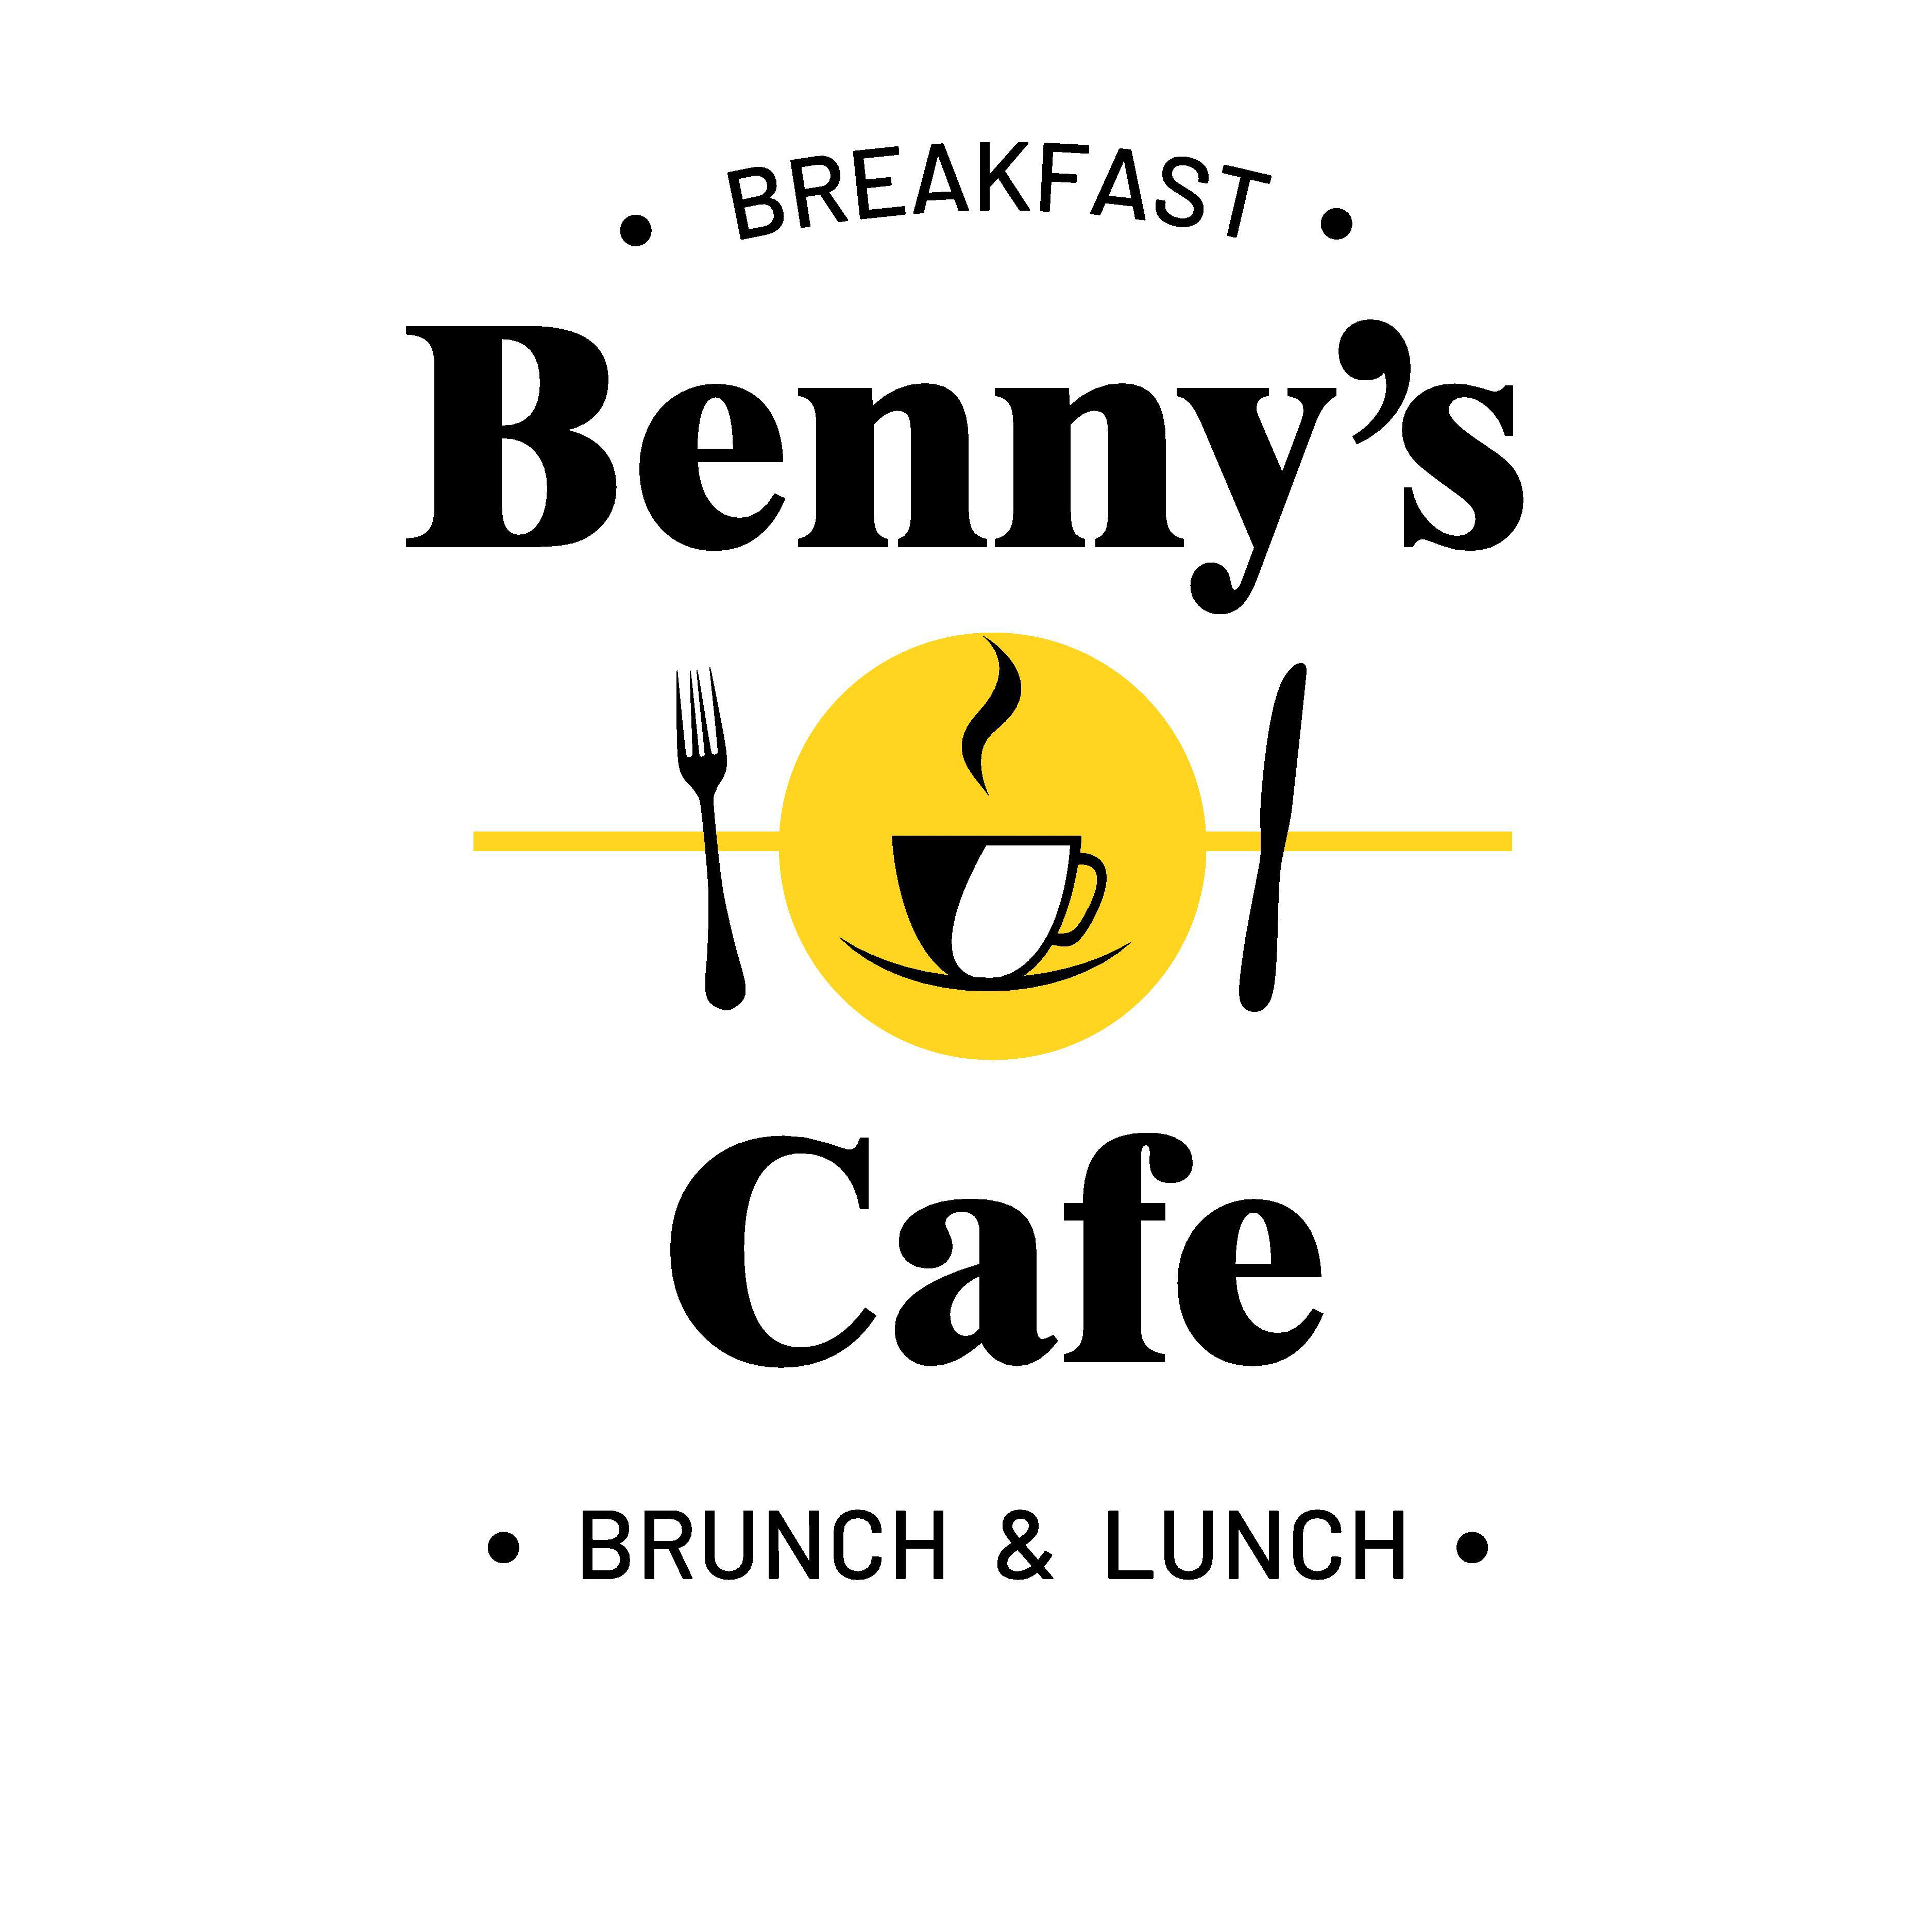 Benny's Cafe - Breakfast & Lunch image 0